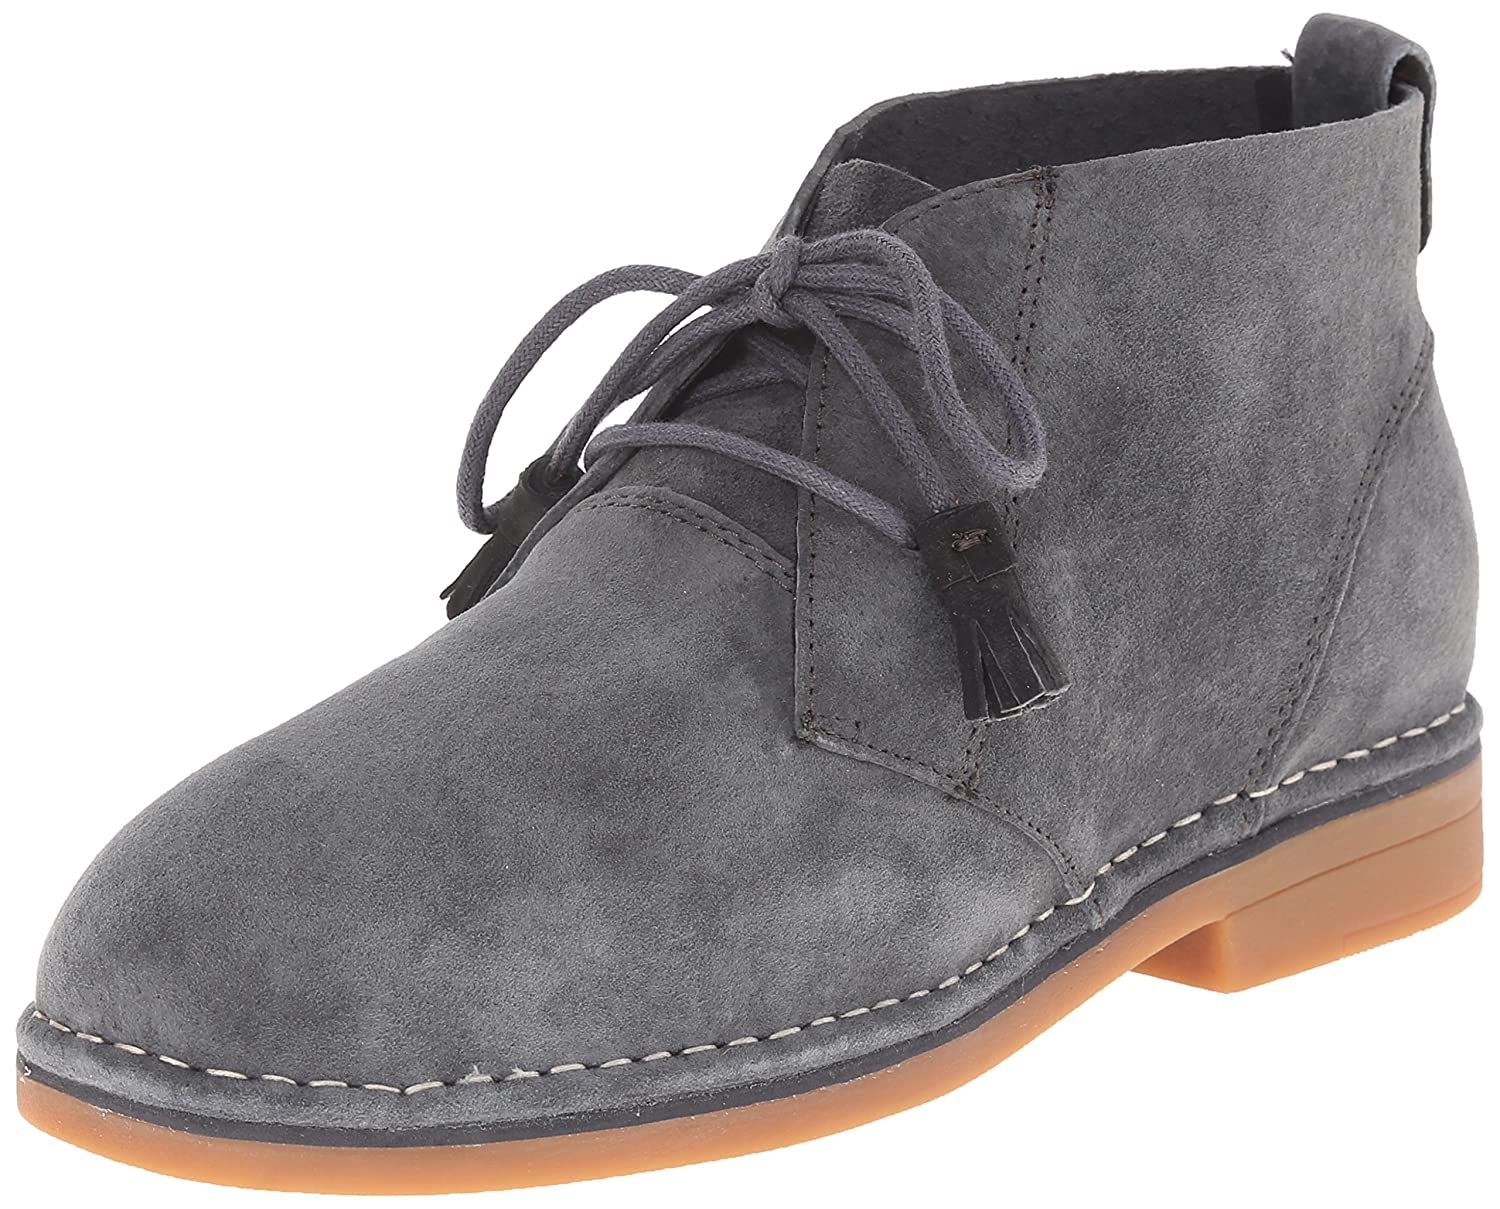 Hush Puppies Women's Cyra Catelyn Boot B00W5Y82FO 9.5 B(M) US|Dark Grey